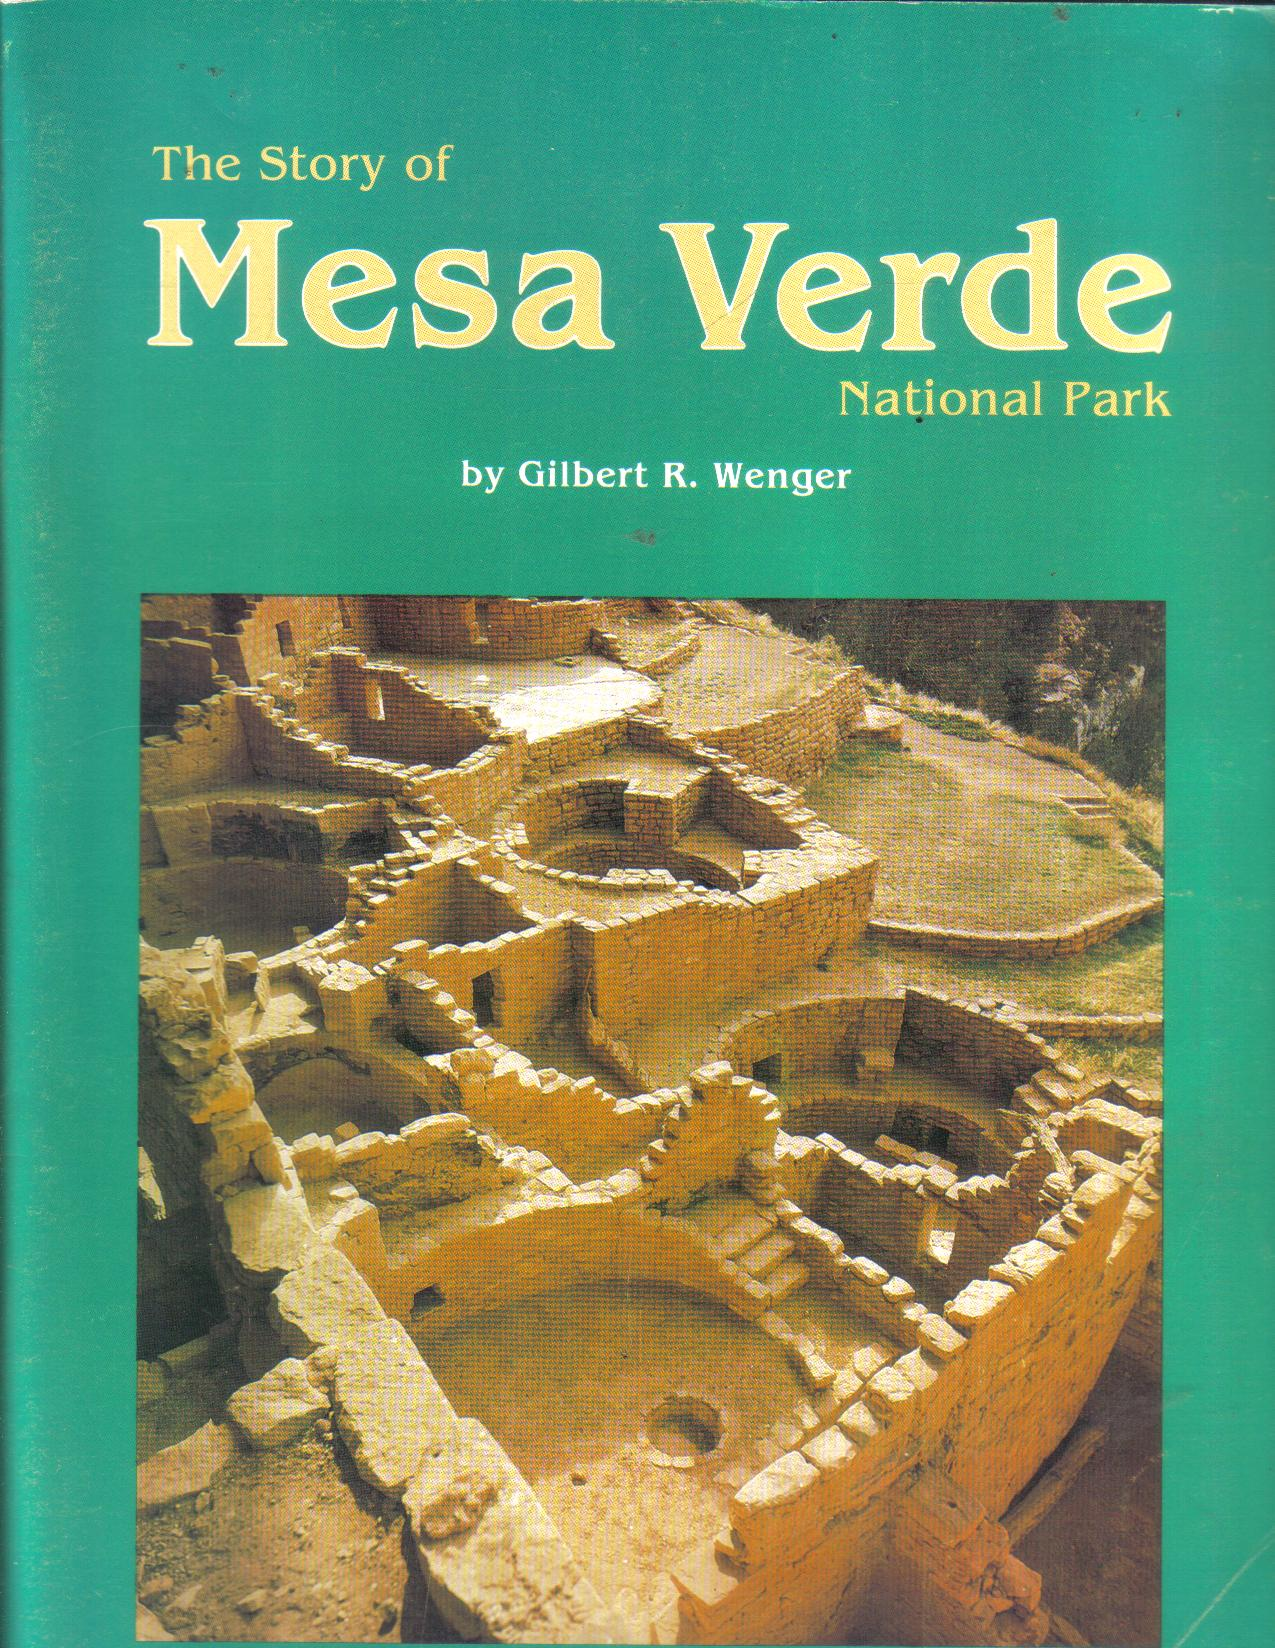 The story of Mesa VerdeNational Park by Gilbert R. Wenger